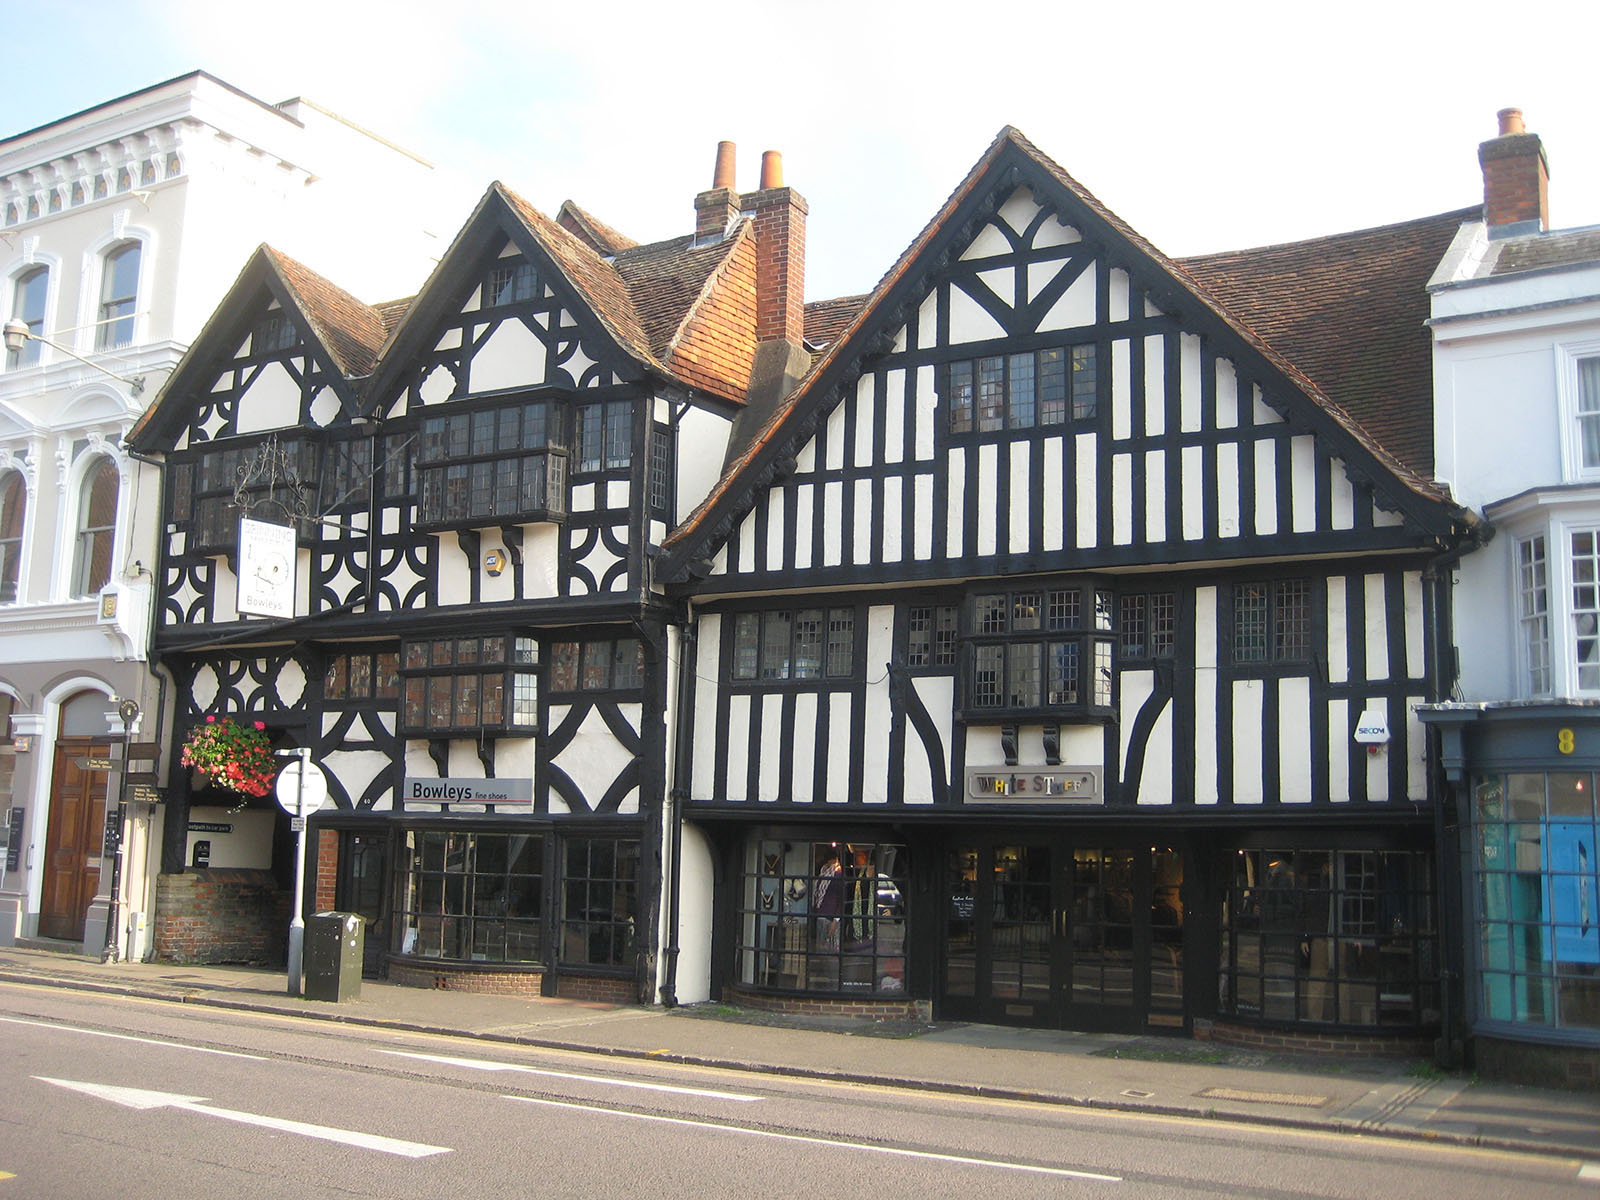 40 The Borough, Farnham - an traditional building with oak structure.